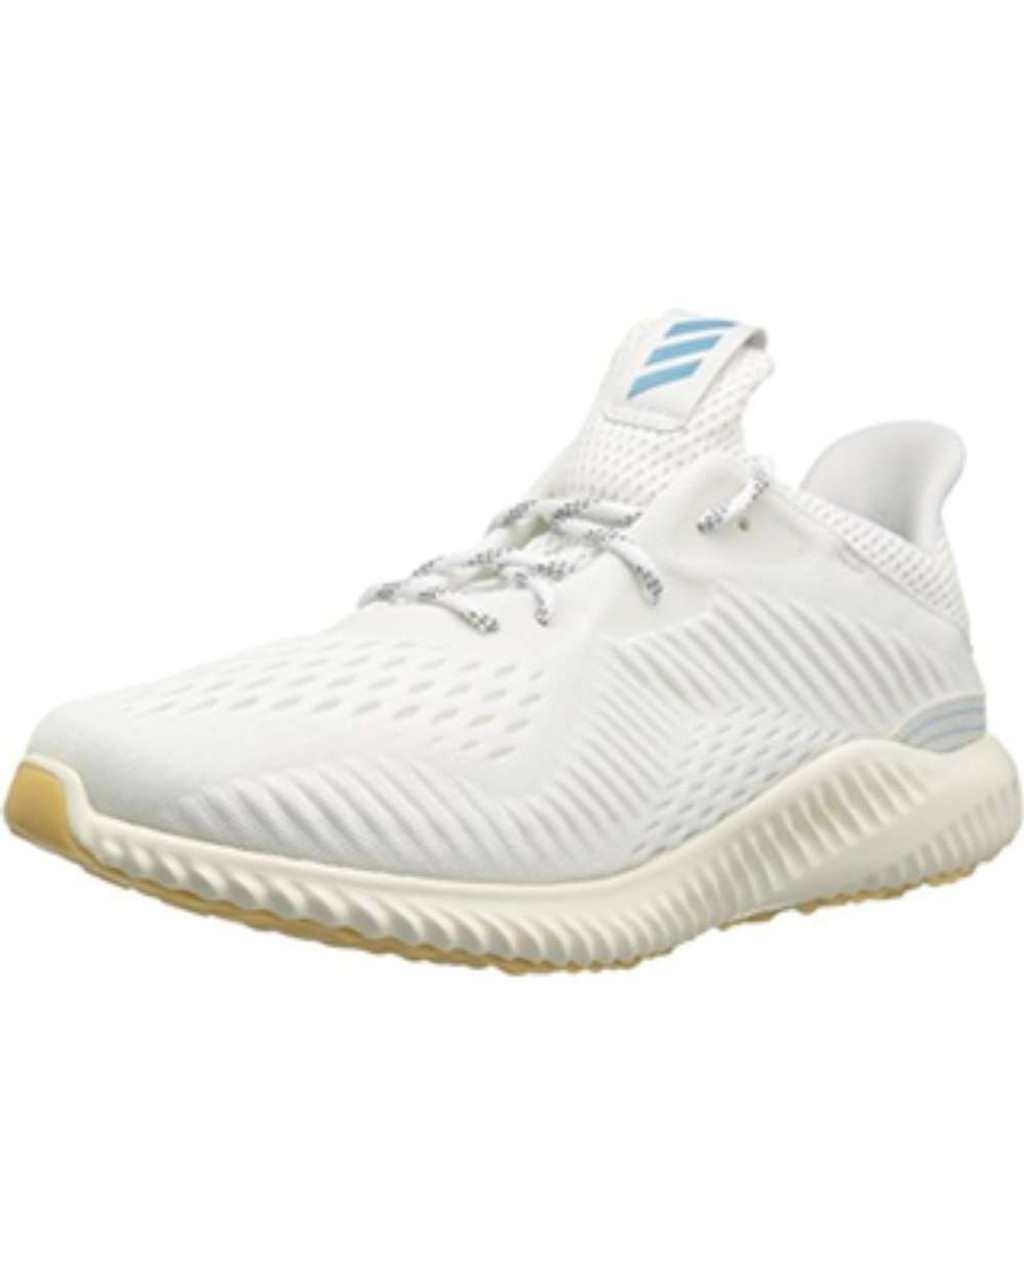 quality design efb27 891ee Adidas Womens adidas Alphabounce 1 Parley w Low Top Lace Up Running Sneaker